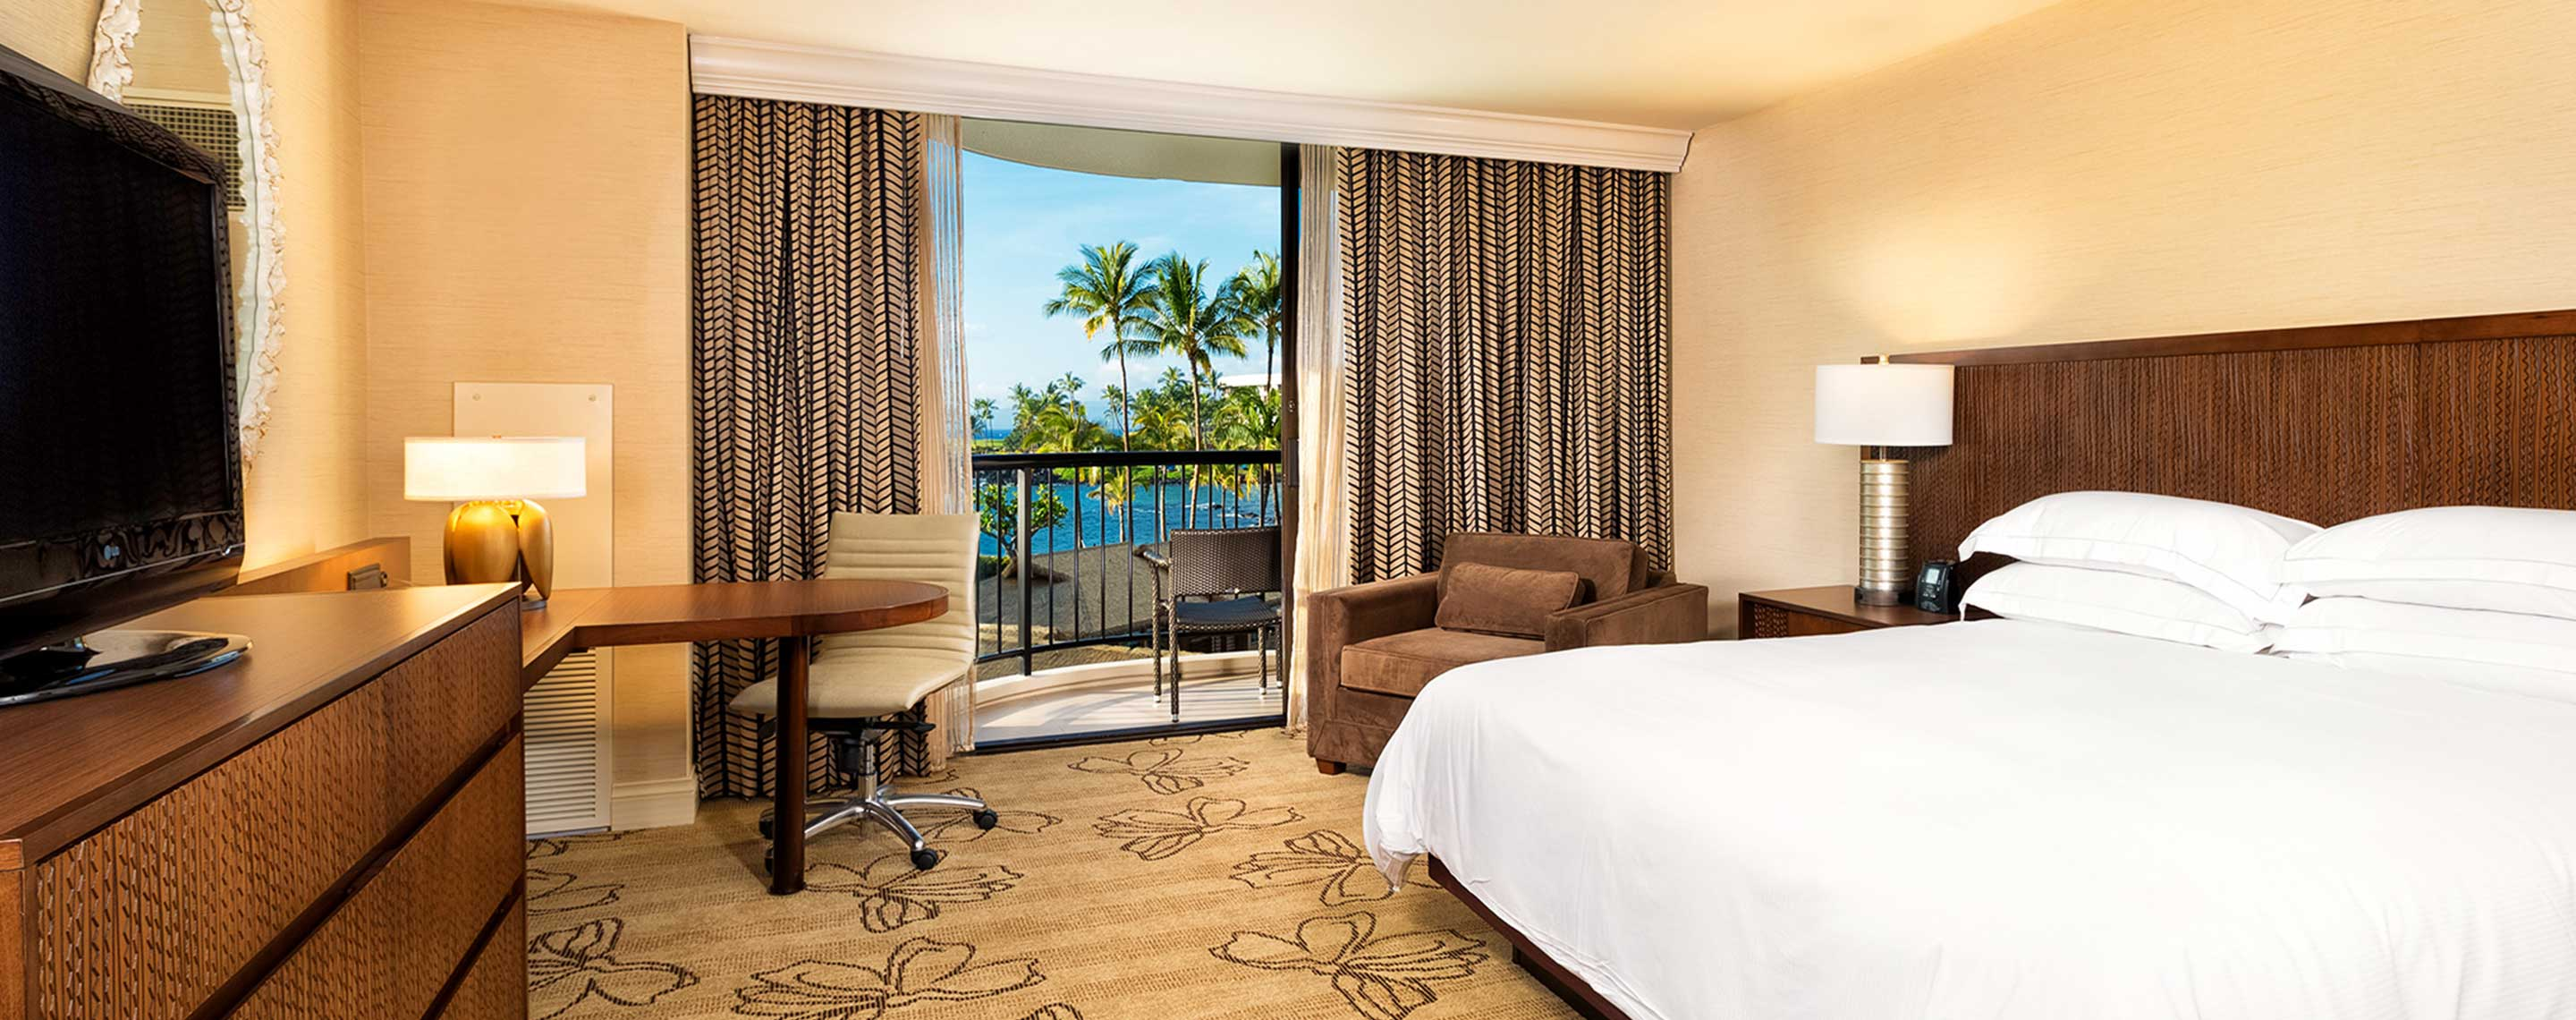 Hilton Waikoloa Village Rooms and Suites